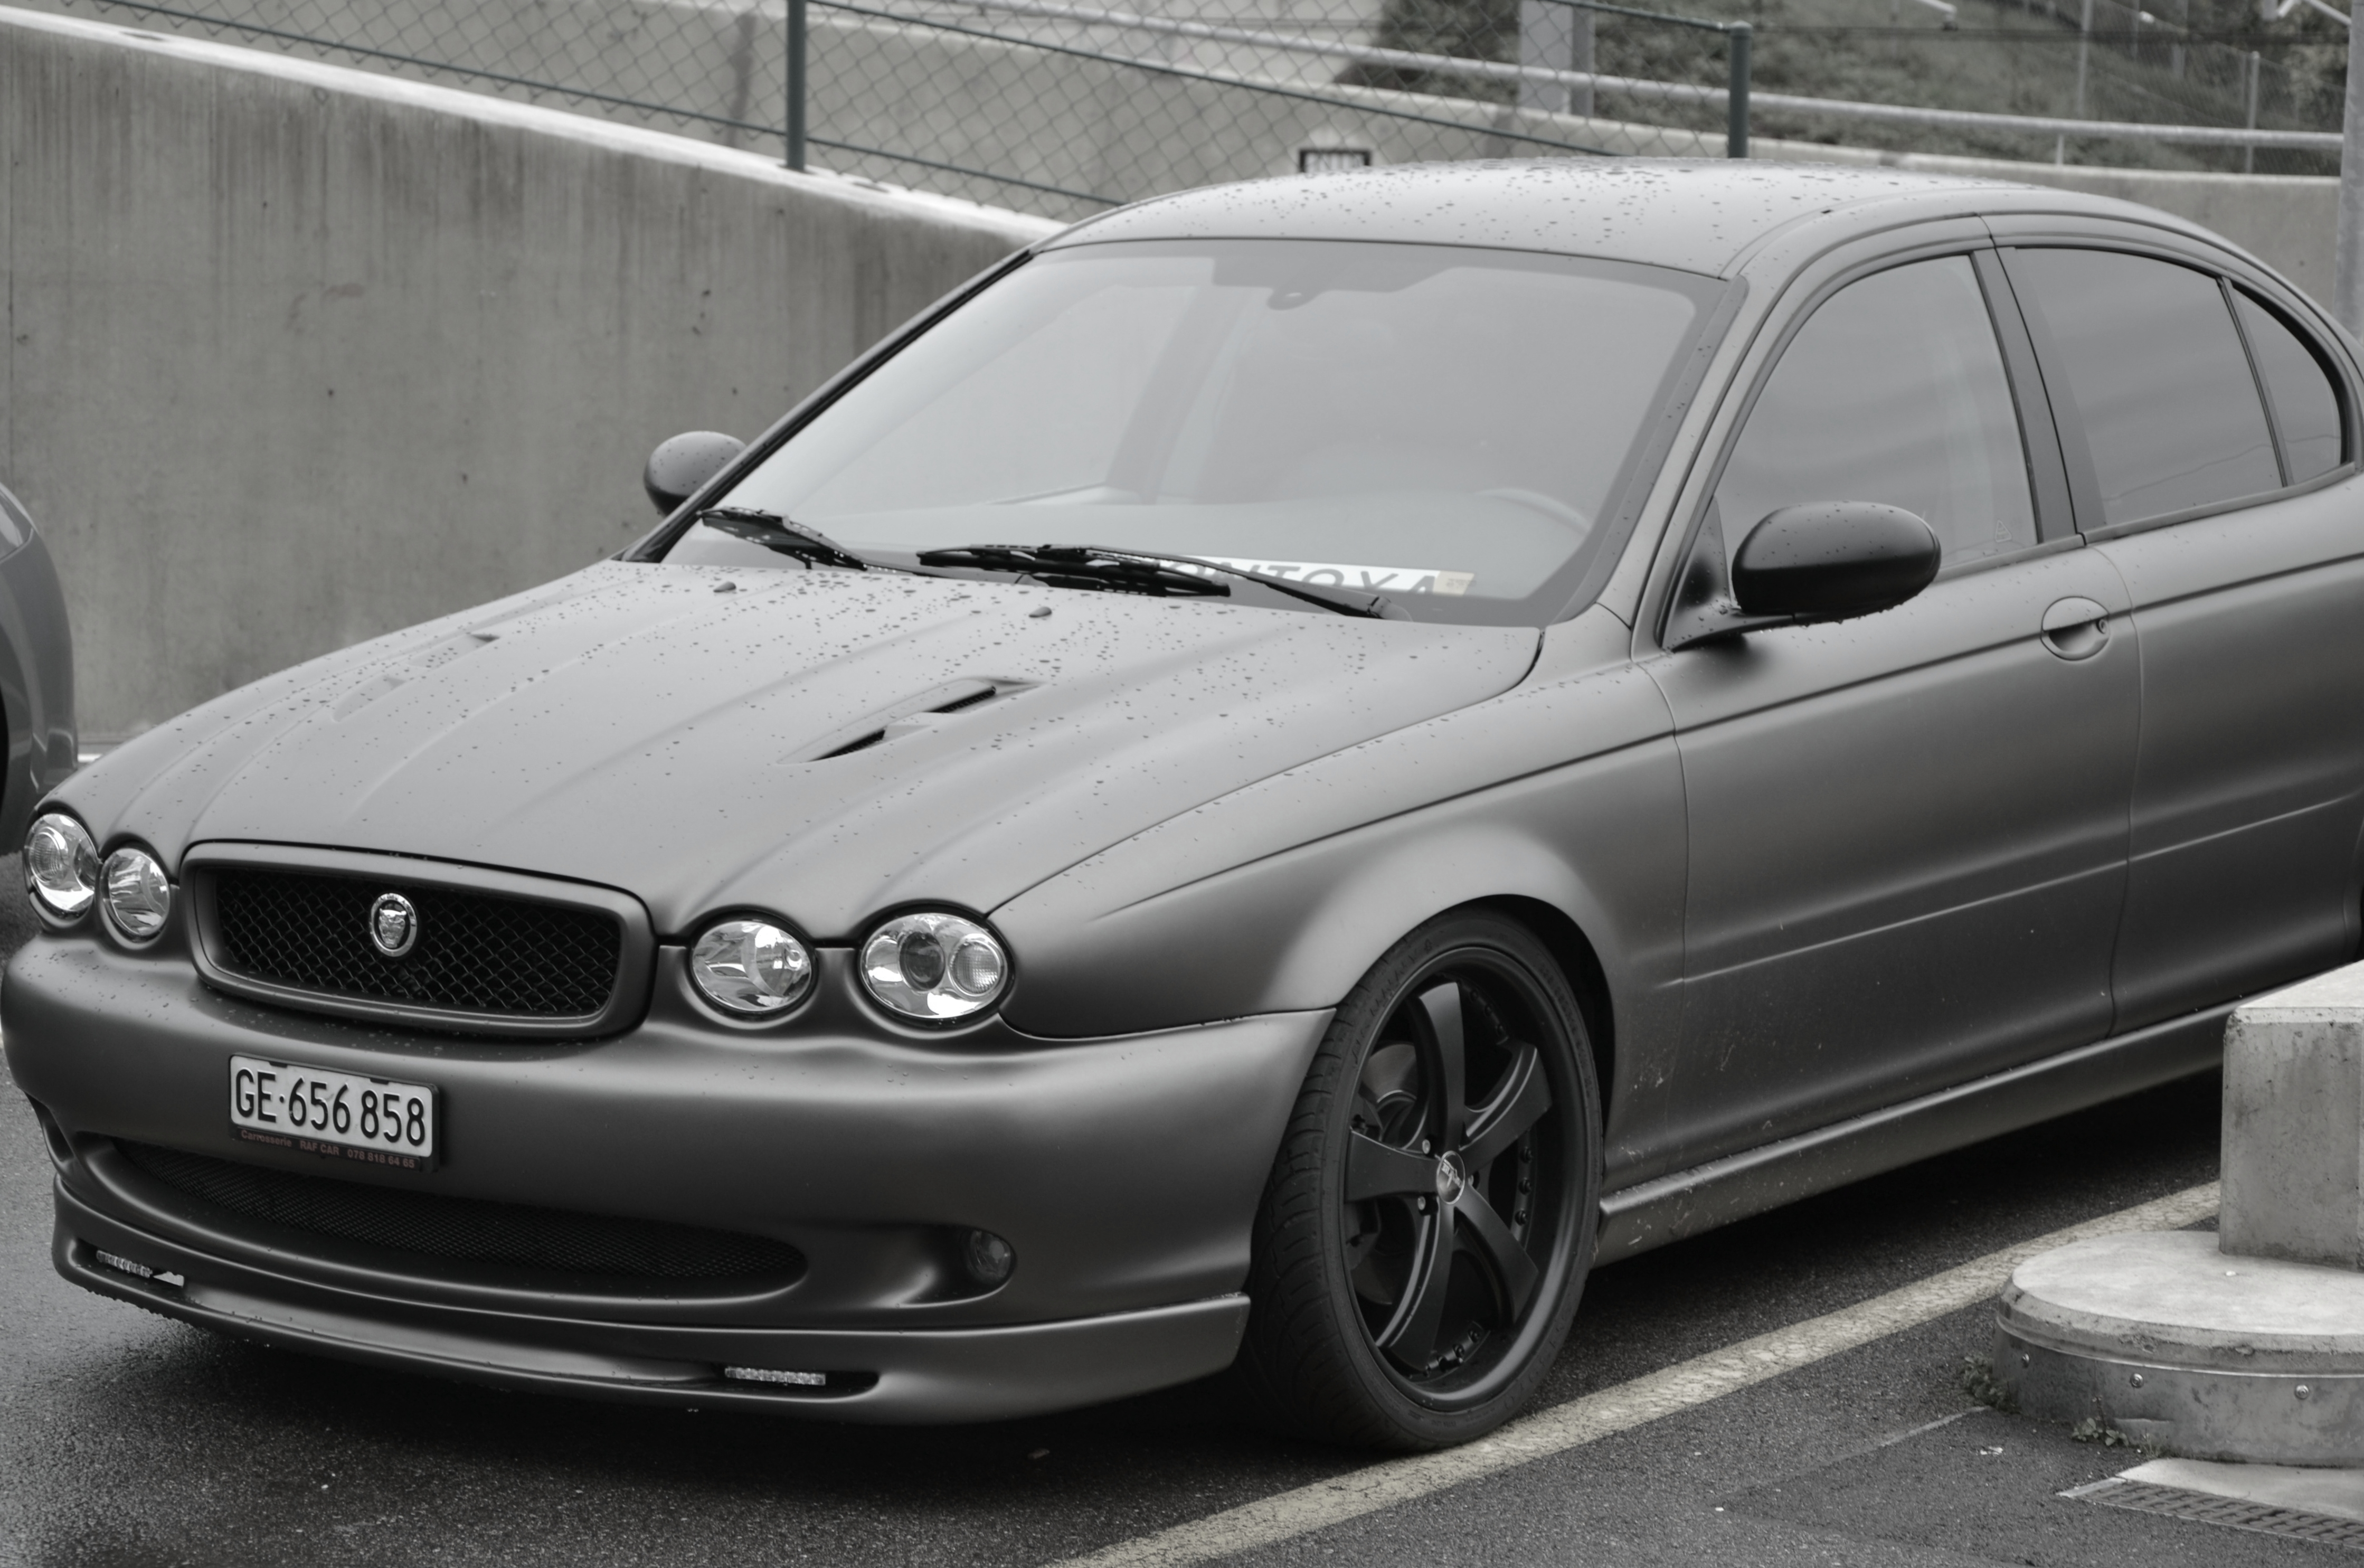 andredejesus 2002 jaguar x type3 0l sport sedan 4d specs photos modification info at cardomain. Black Bedroom Furniture Sets. Home Design Ideas